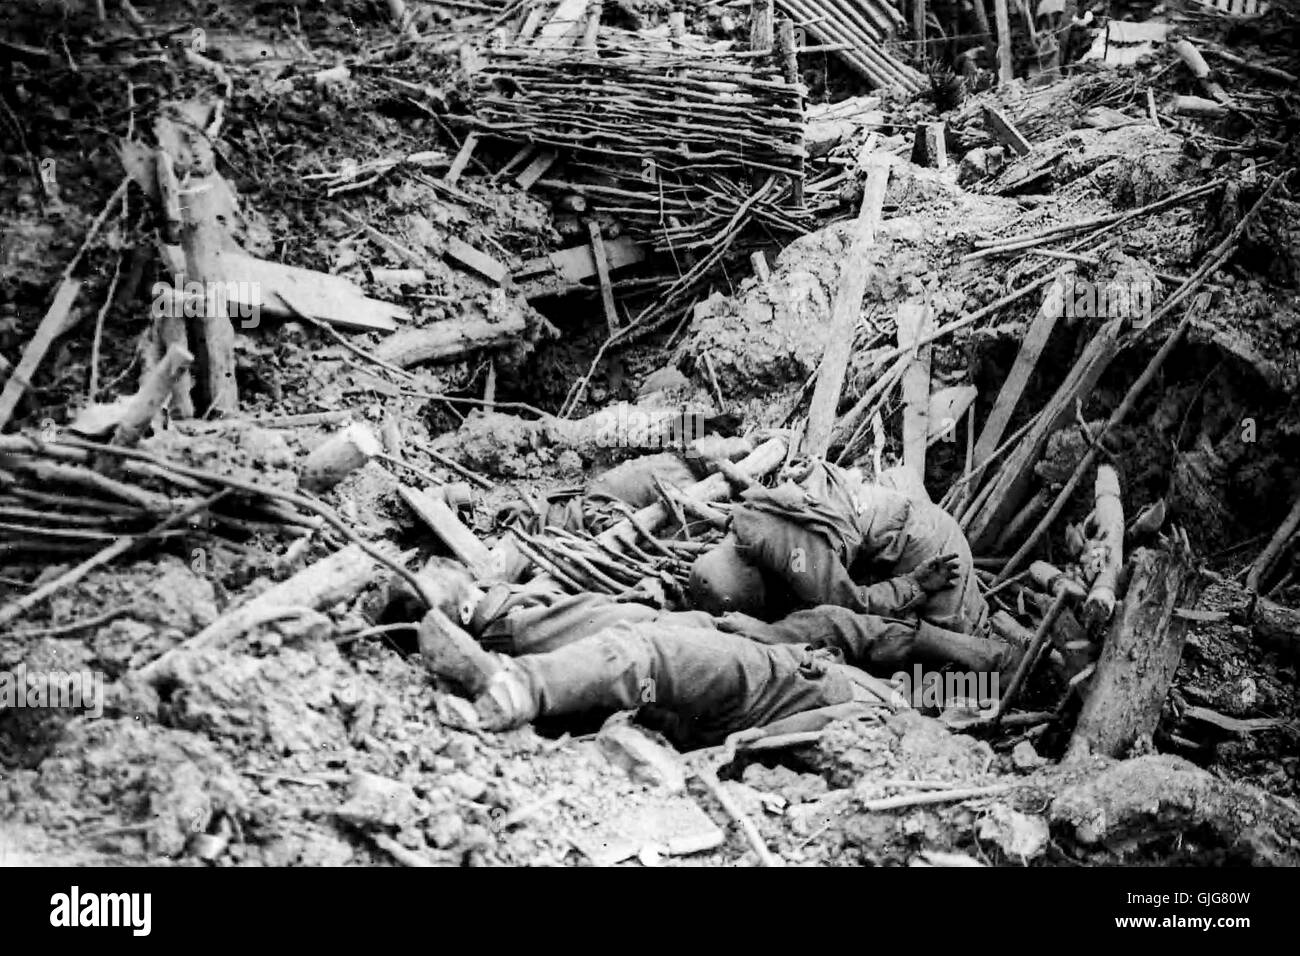 Smashed up German trench on Messines Ridge with dead soldiers, Battle of Ypres, Belgium, World War One - Stock Image